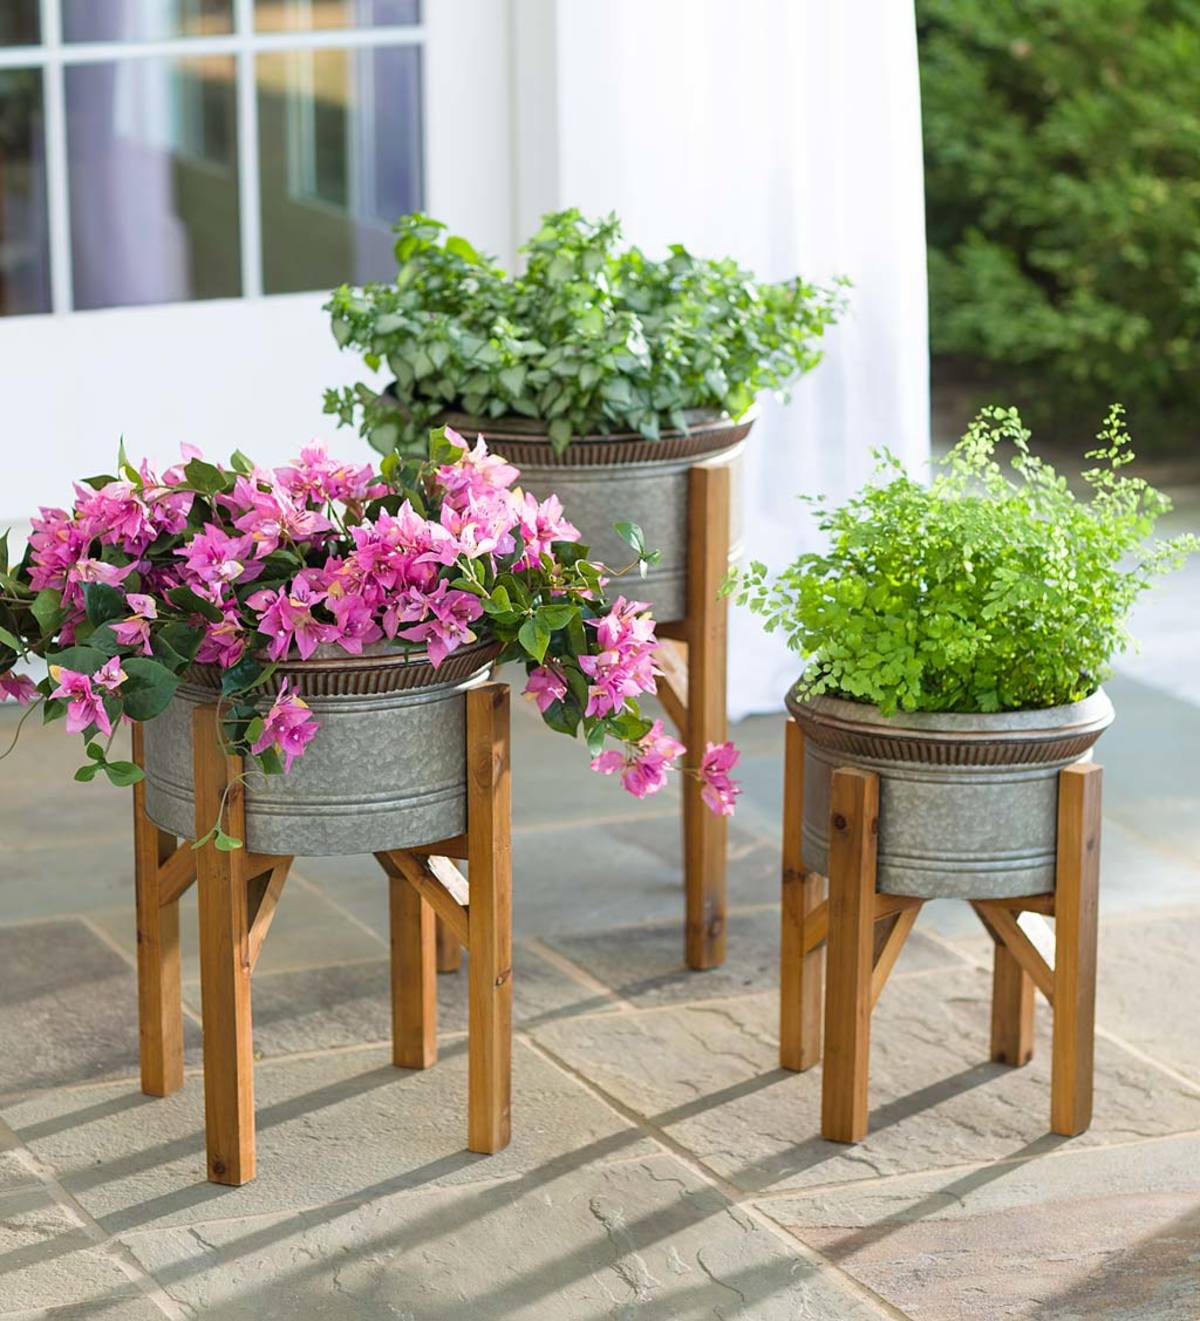 Galvanized Planters with Wooden Stands, Set of 3